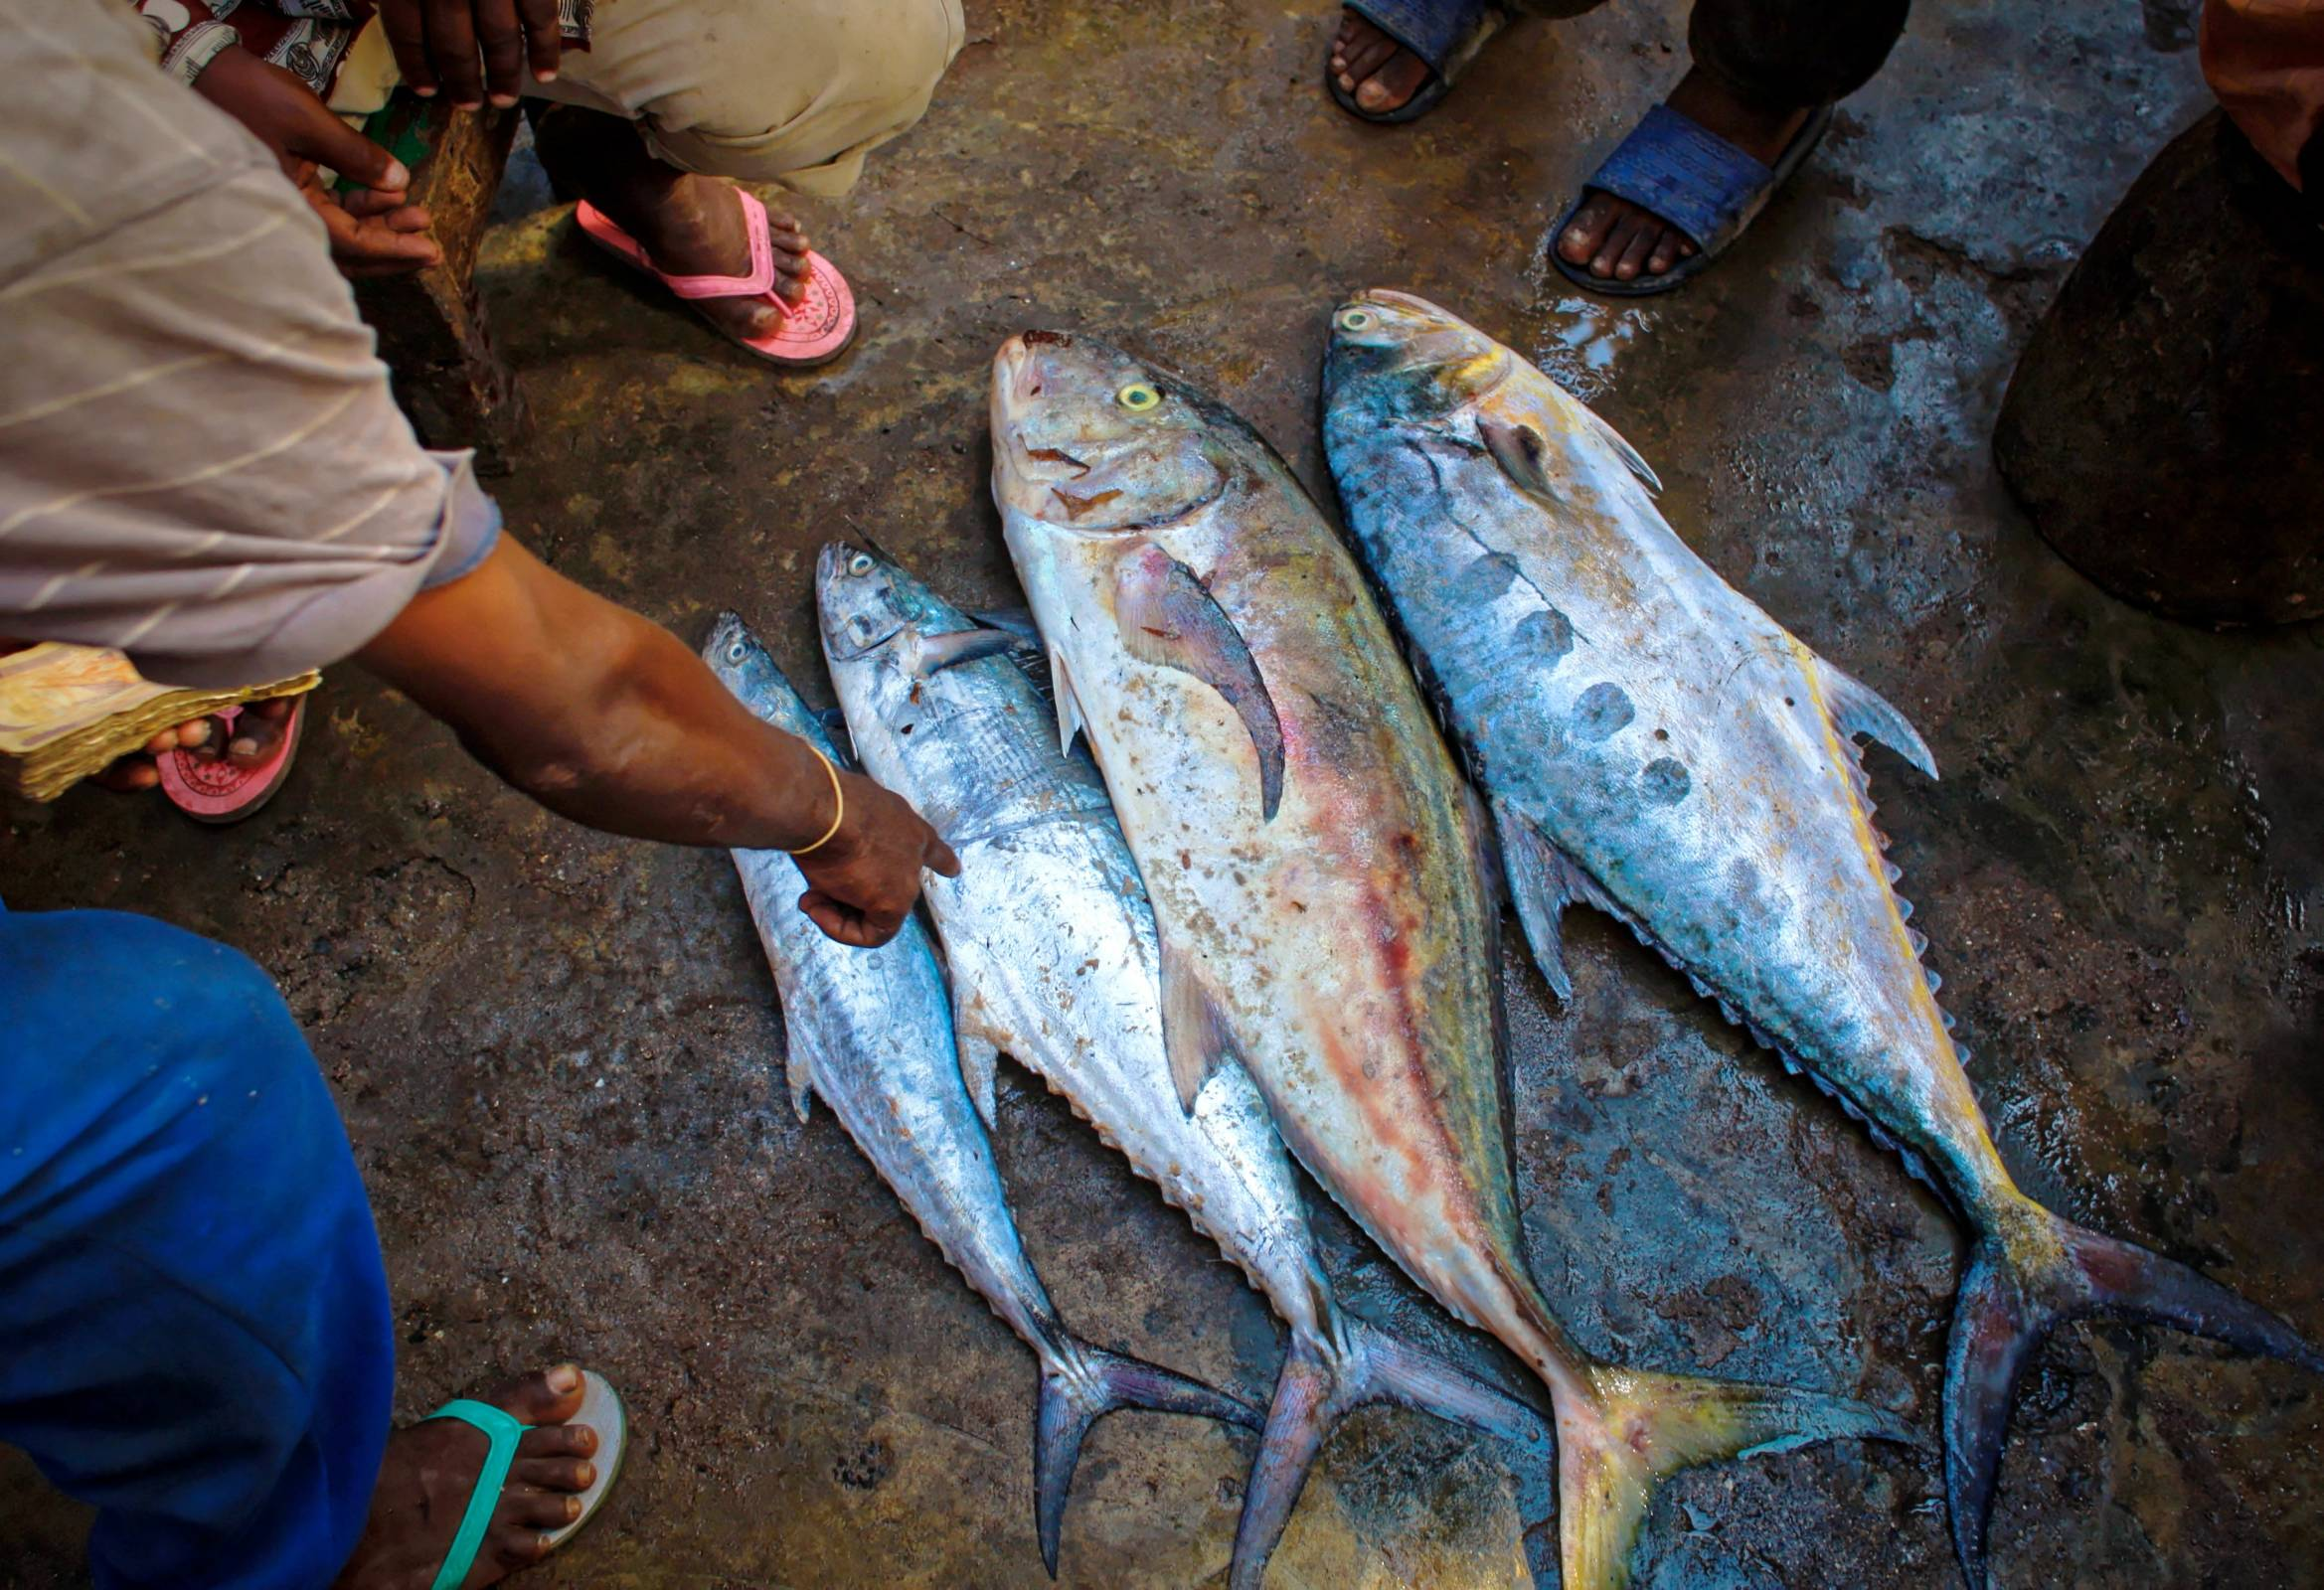 Hepatitis A Warning For Raw Tuna From Vietnam